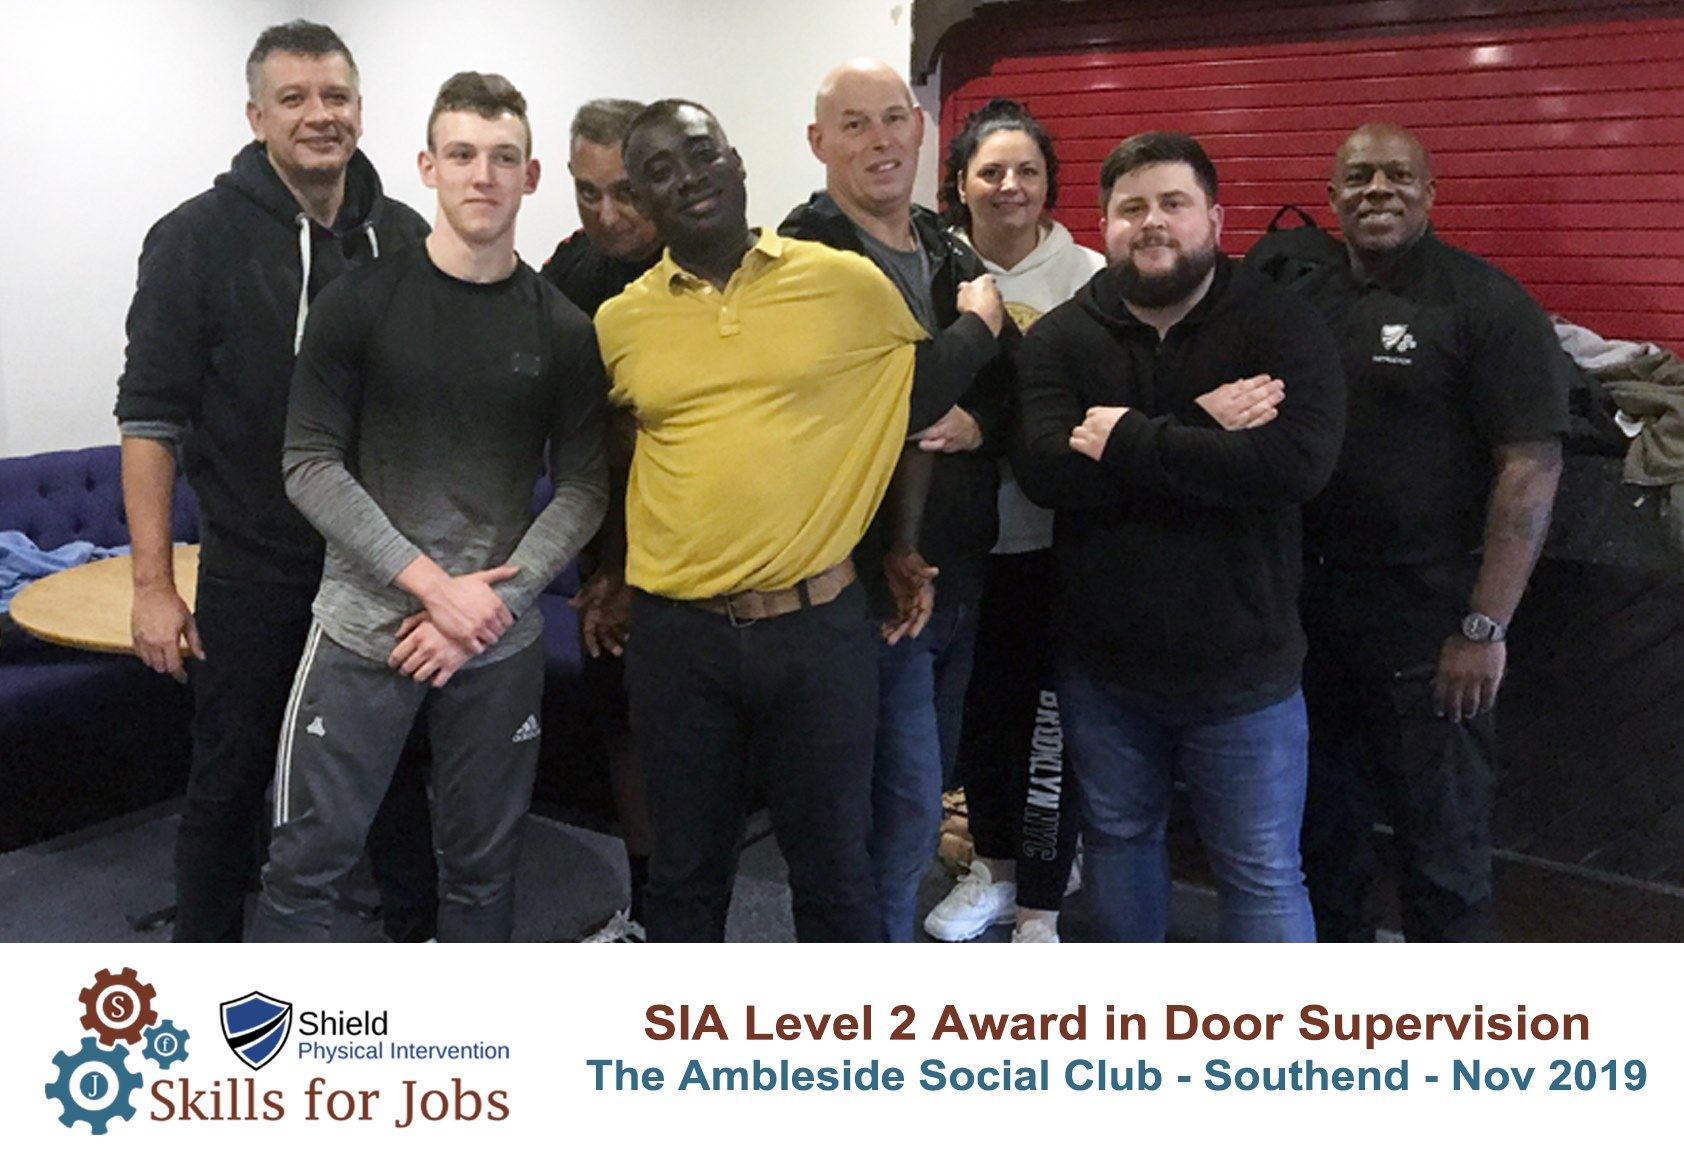 Southend - SIA Level 2 Award in Door Supervision - November 2019